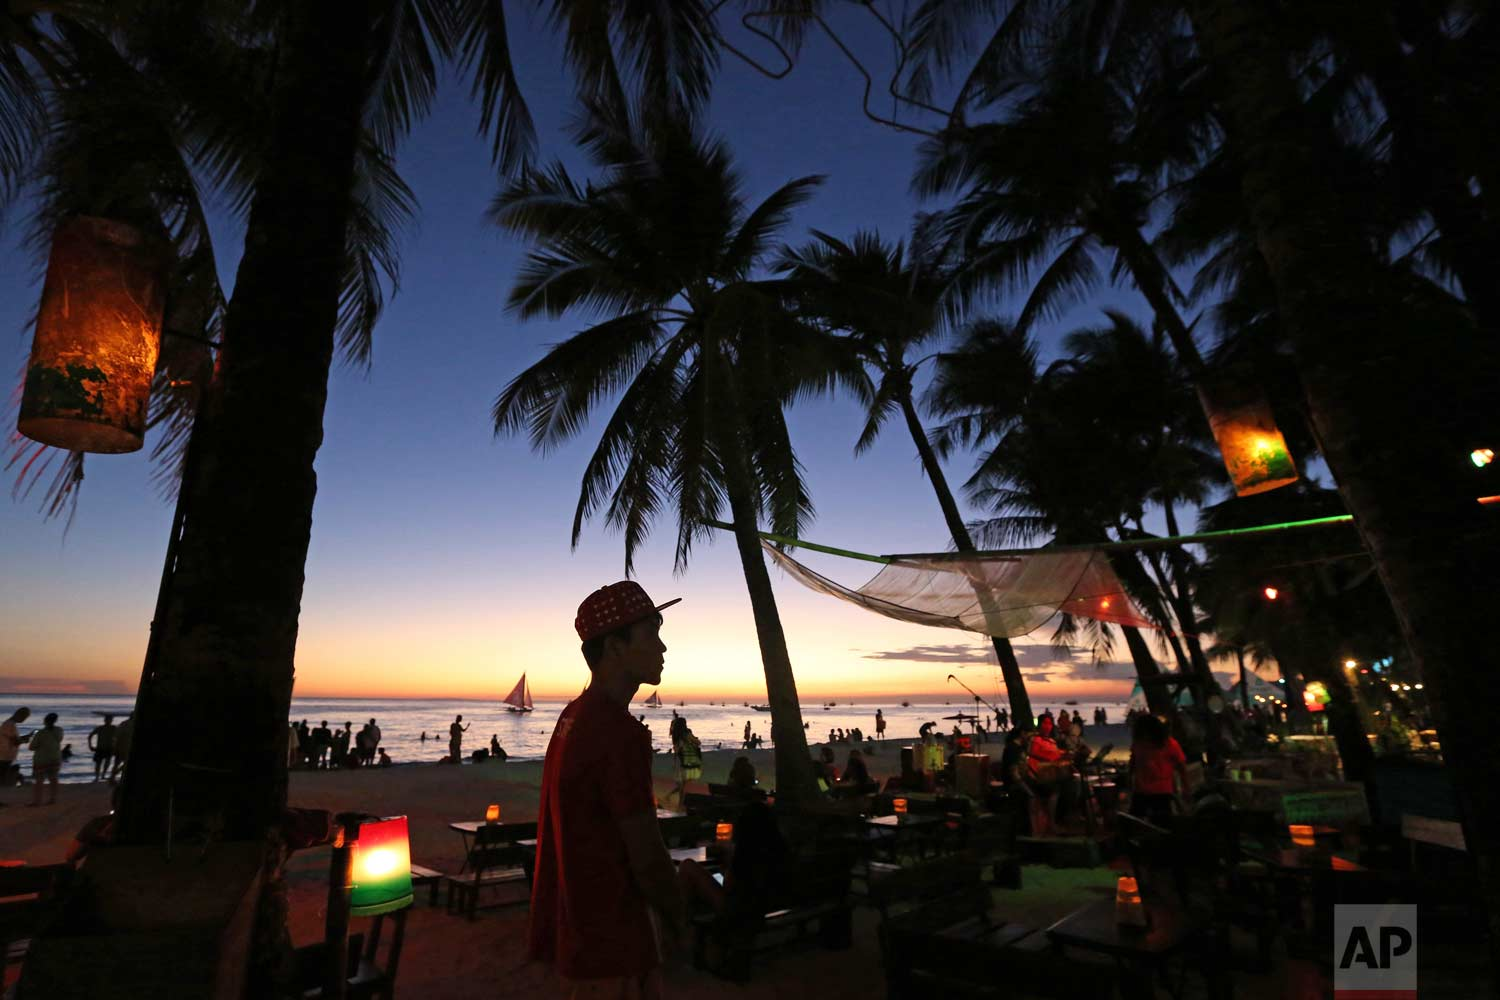 Philippines to shut polluted isle of Boracay Duterte called